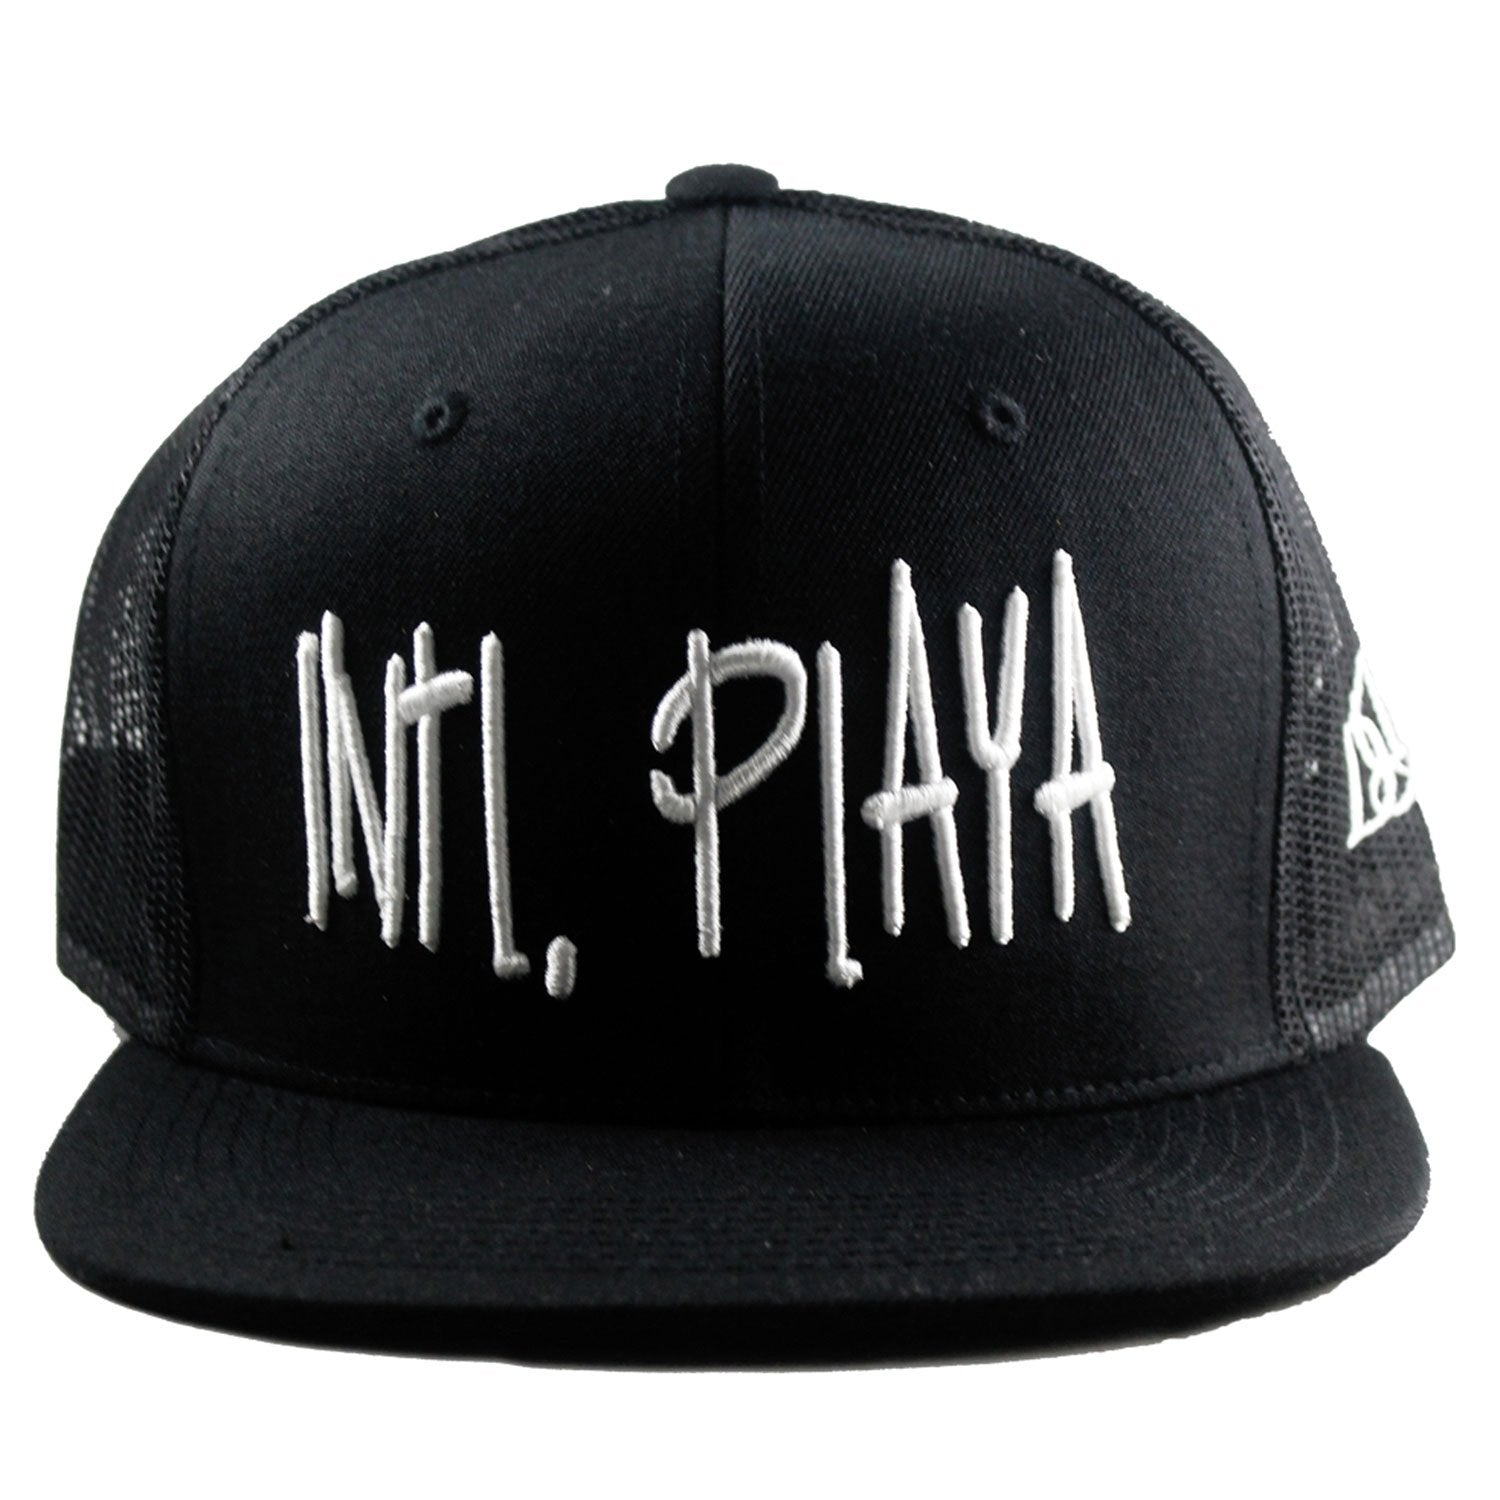 Black intl. playa hat